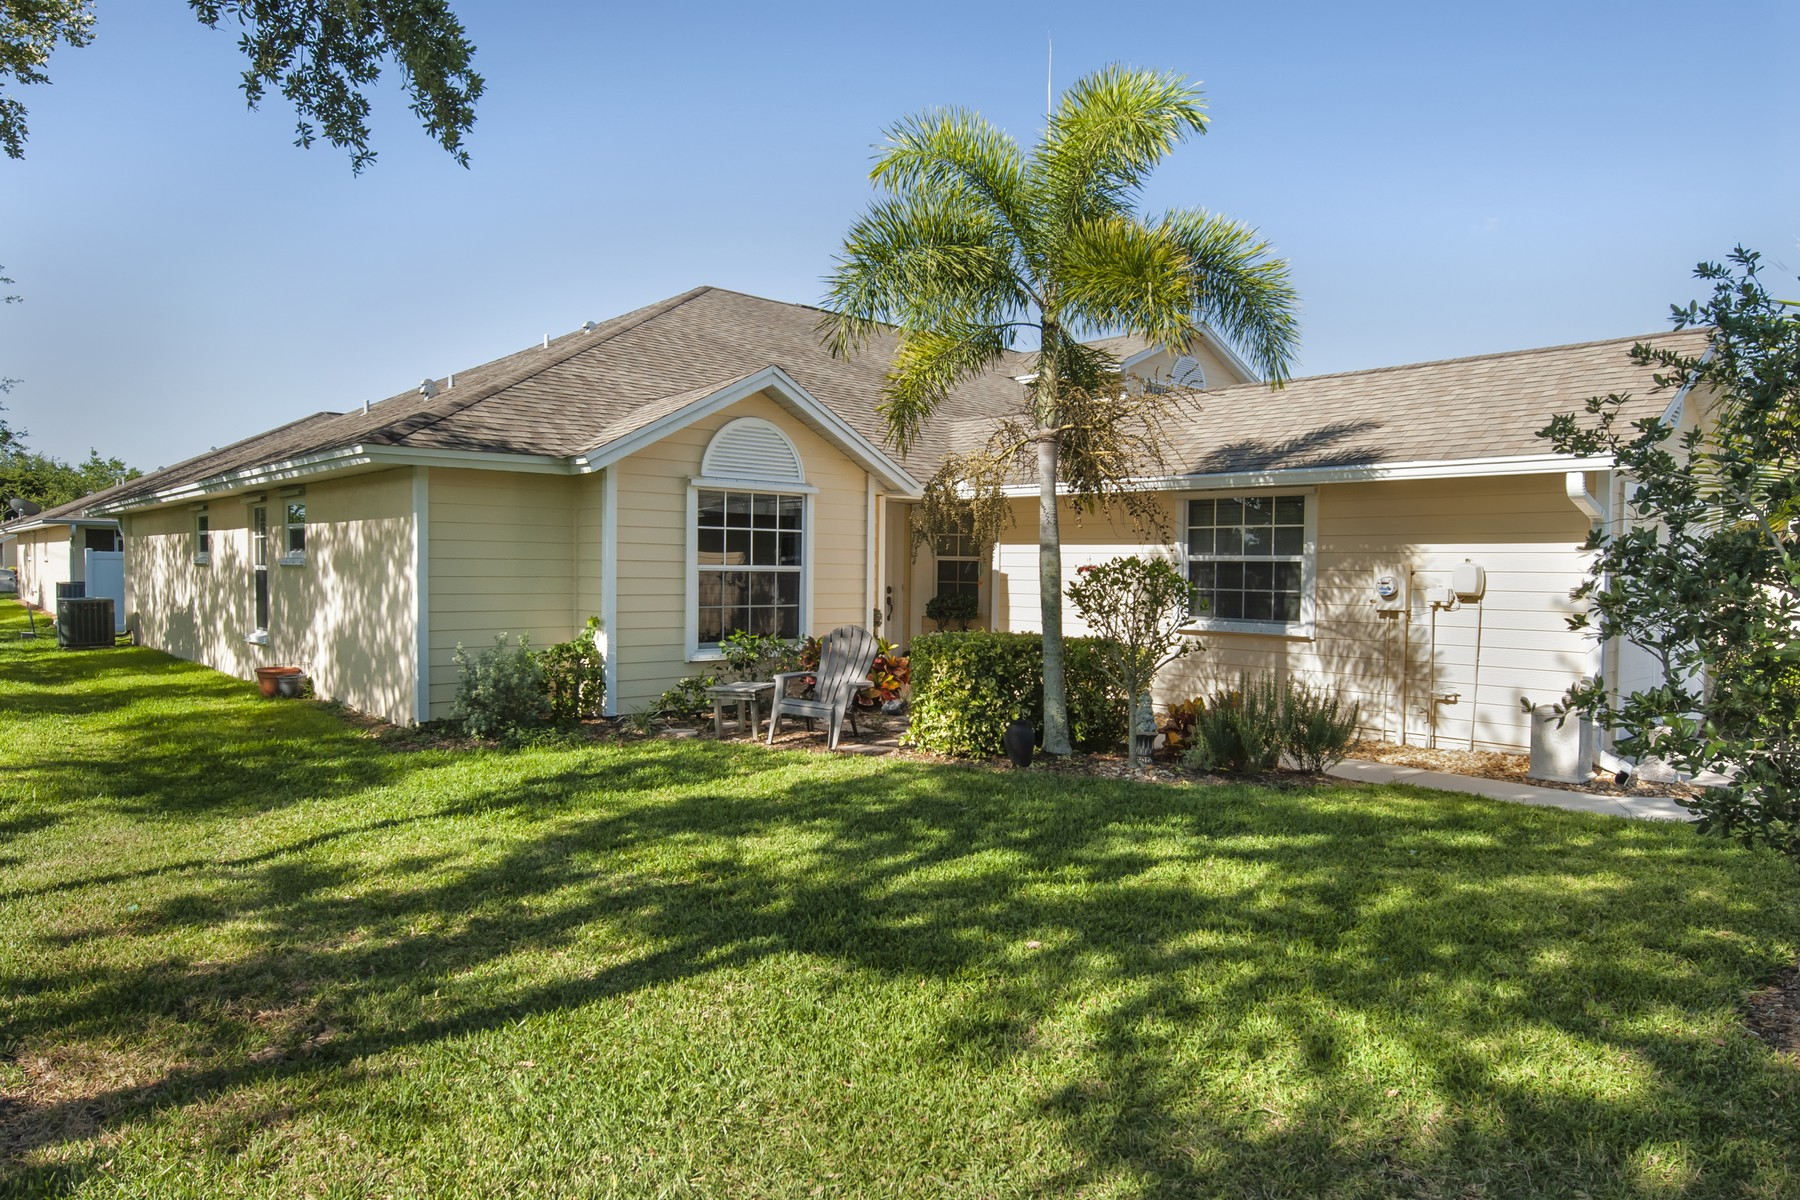 single family homes for Sale at Adorable Cottage-Like Home with Charming Features Throughout. 489 6th Manor Vero Beach, Florida 32962 United States